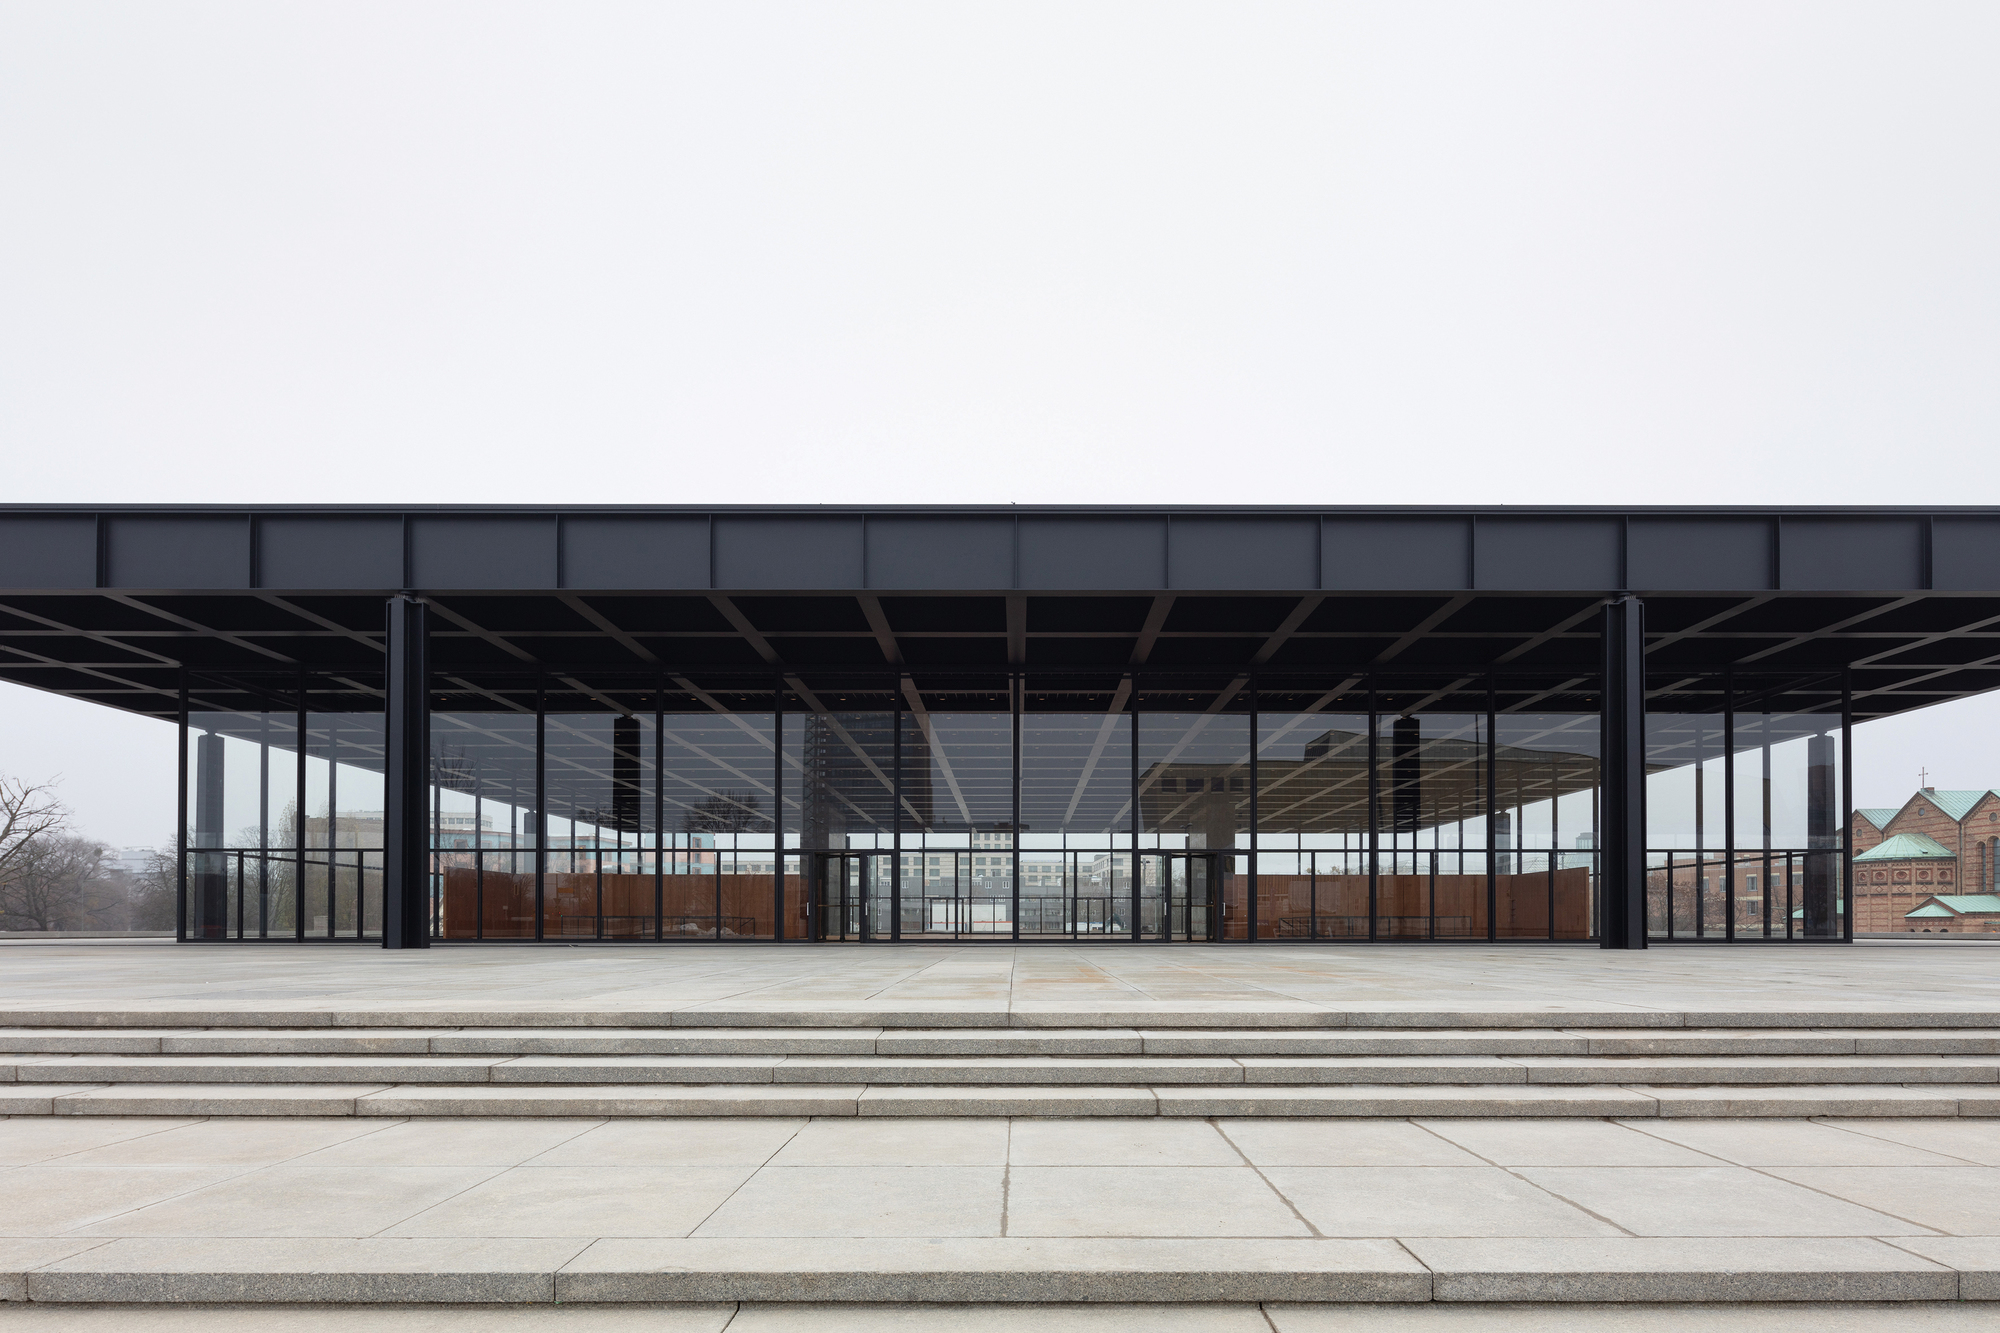 Mies Van Der Rohe Berlin Images Reveal Mies Van Der Rohe's Renovated New National Gallery In Berlin By David Chipperfield | Archdaily